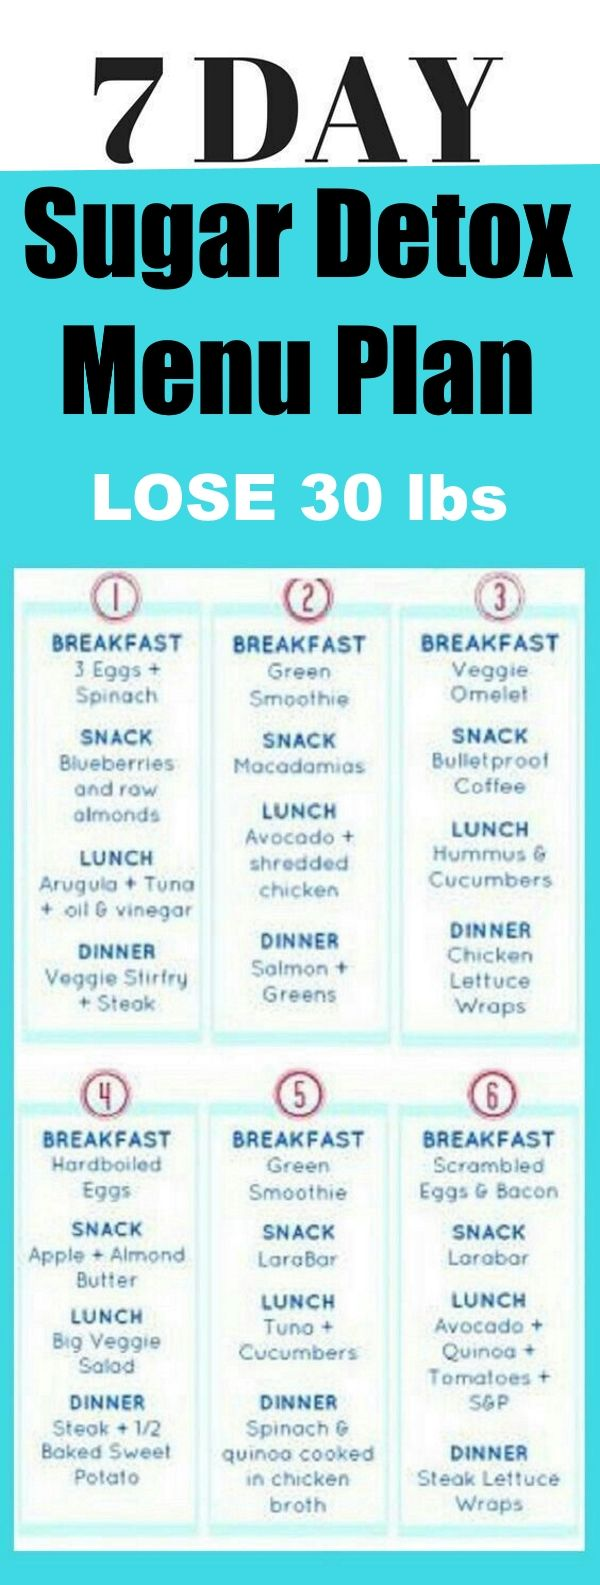 how to lose 30 lbs in a month diet plan